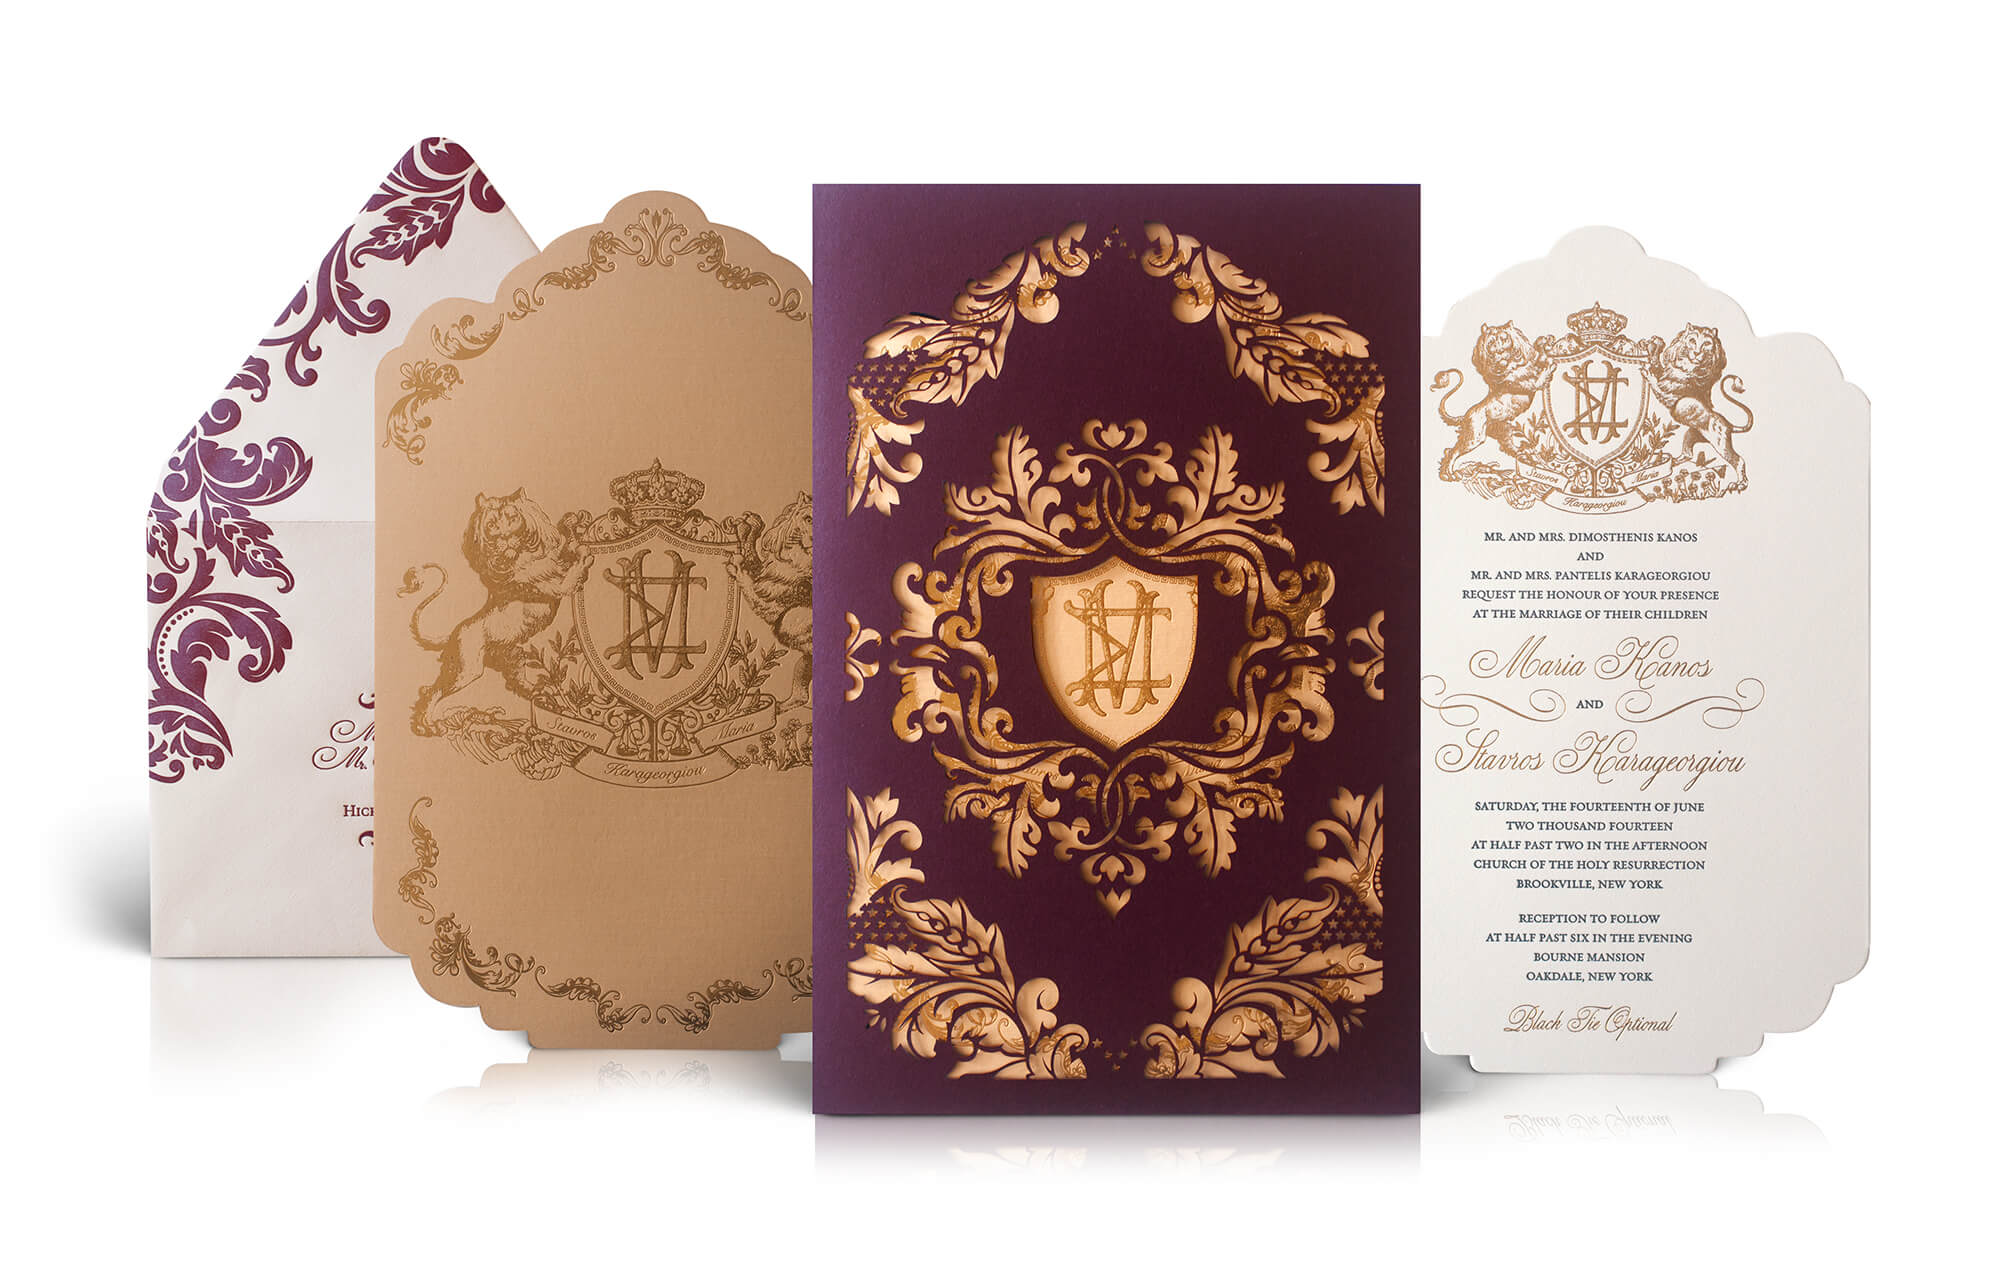 Ornate crest gold and burgundy wedding invitation